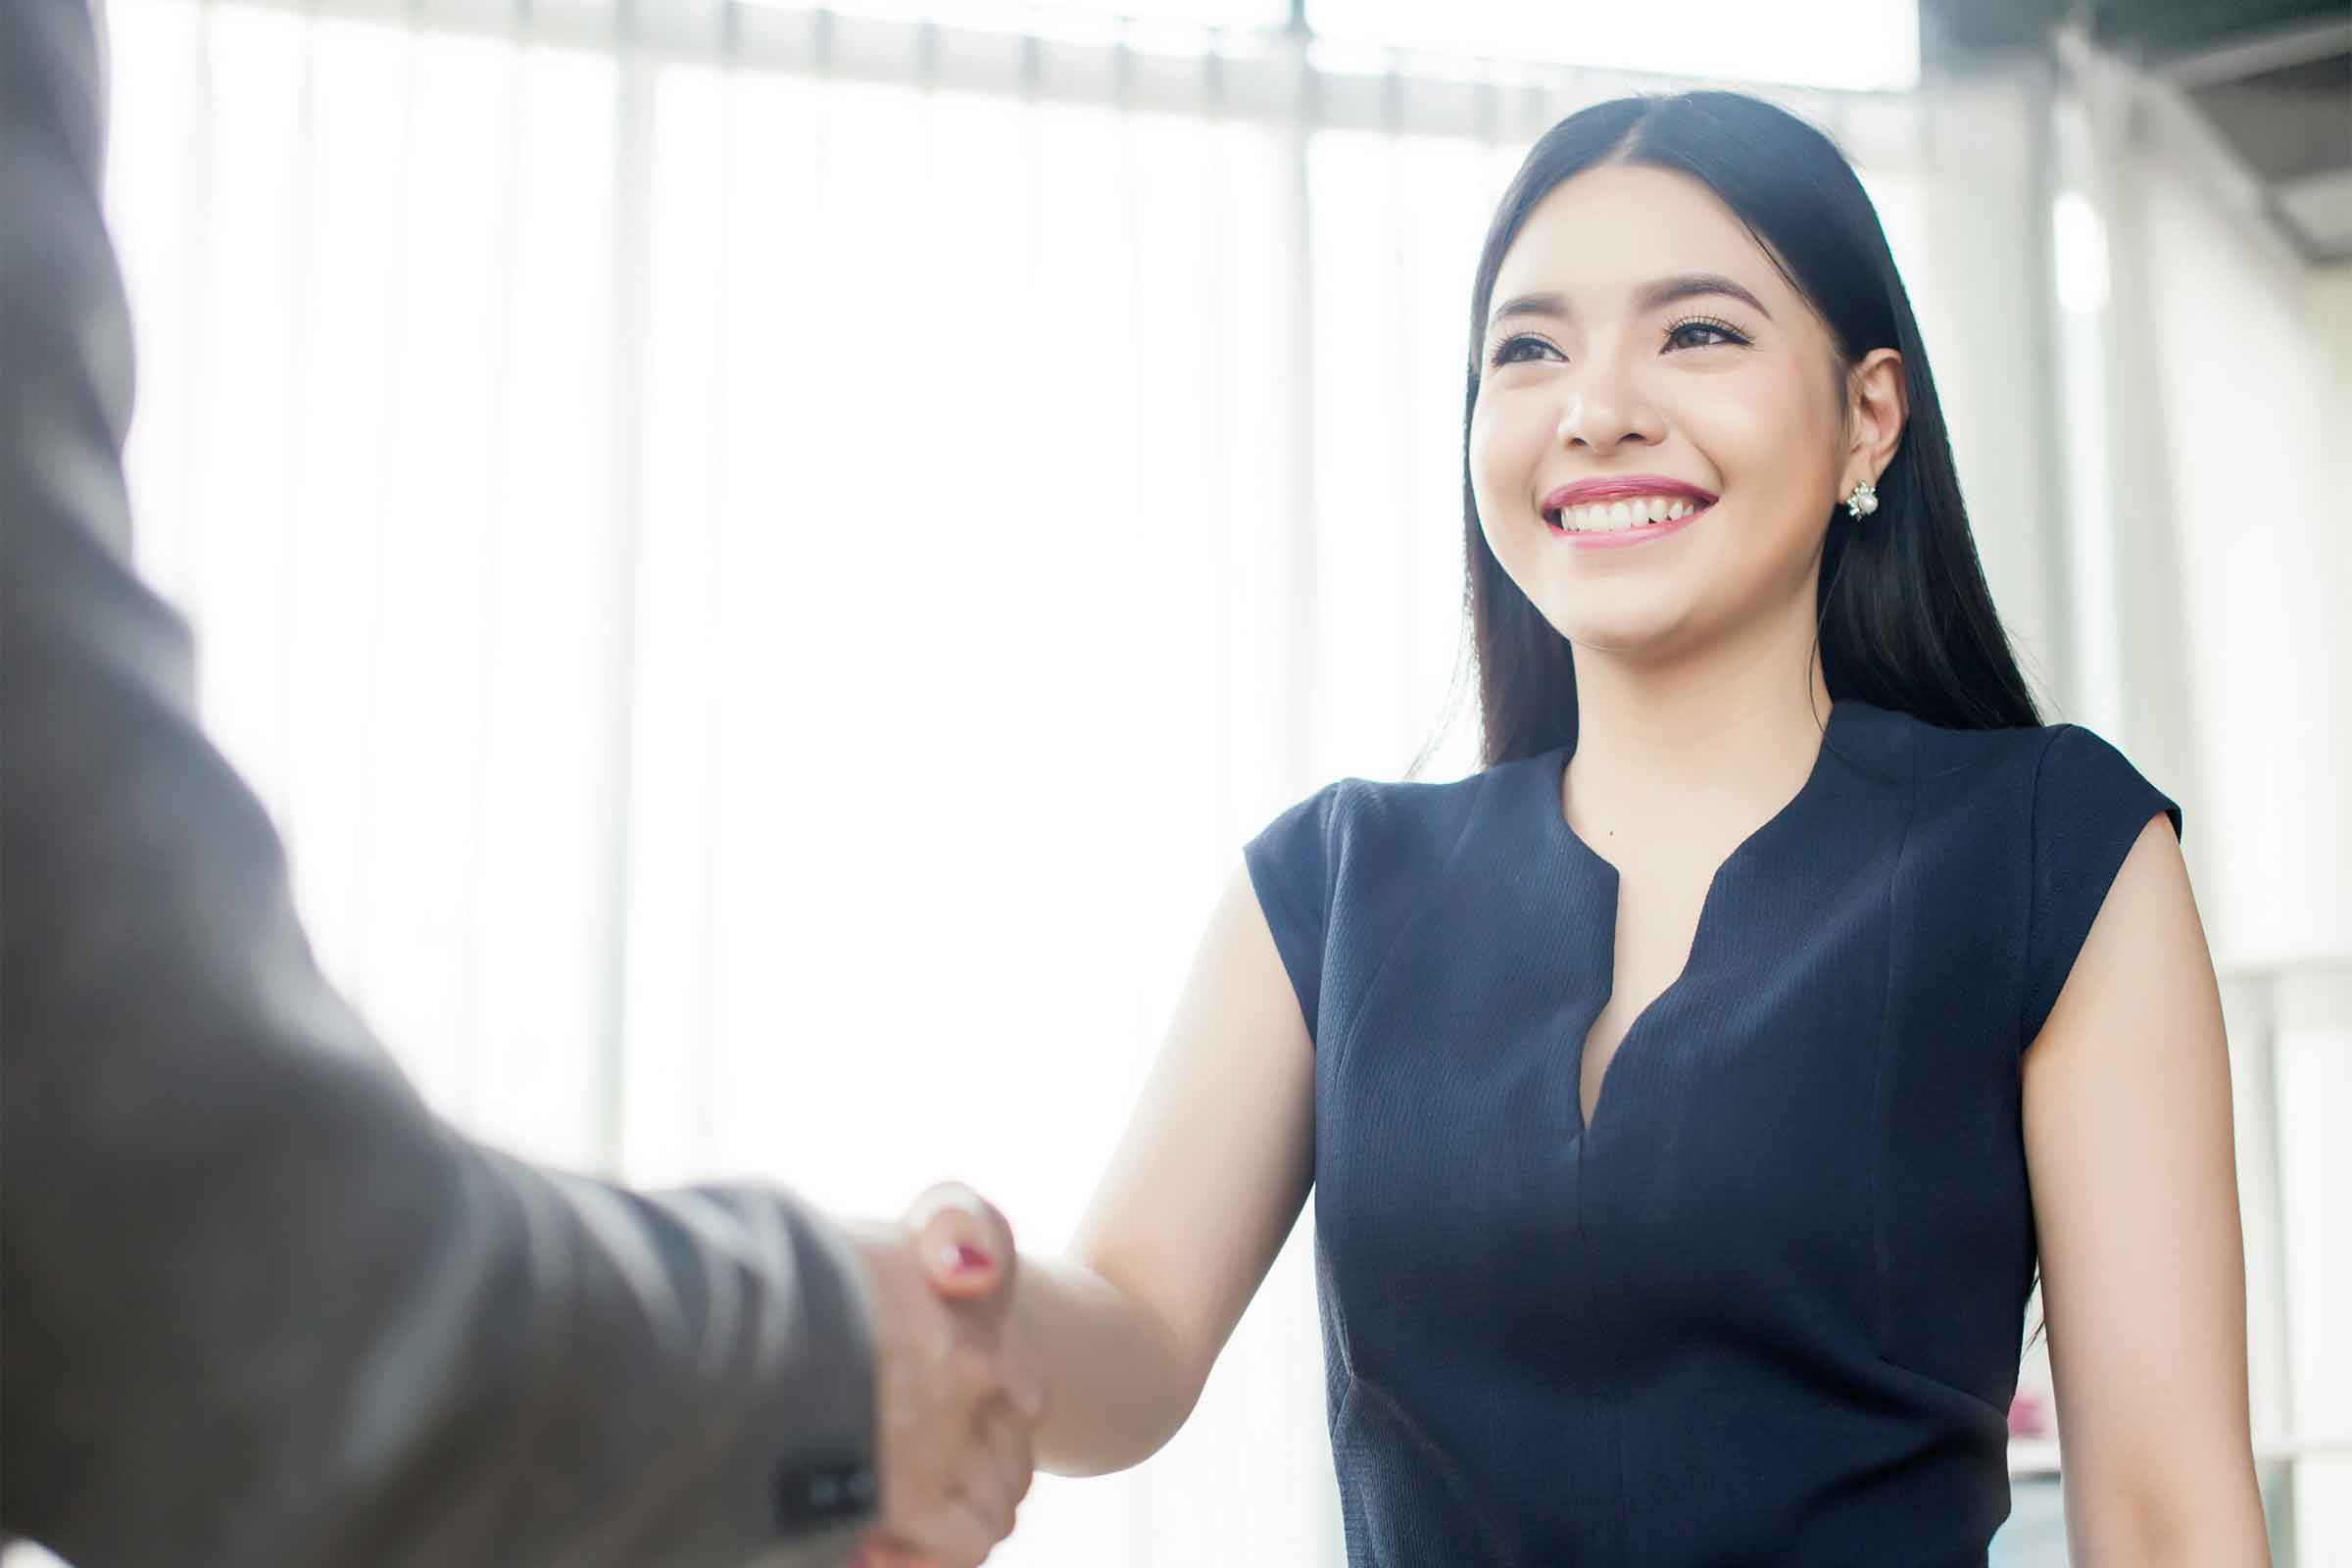 Are You Often Making a Good First Impression? | Blog Beyond Beauty